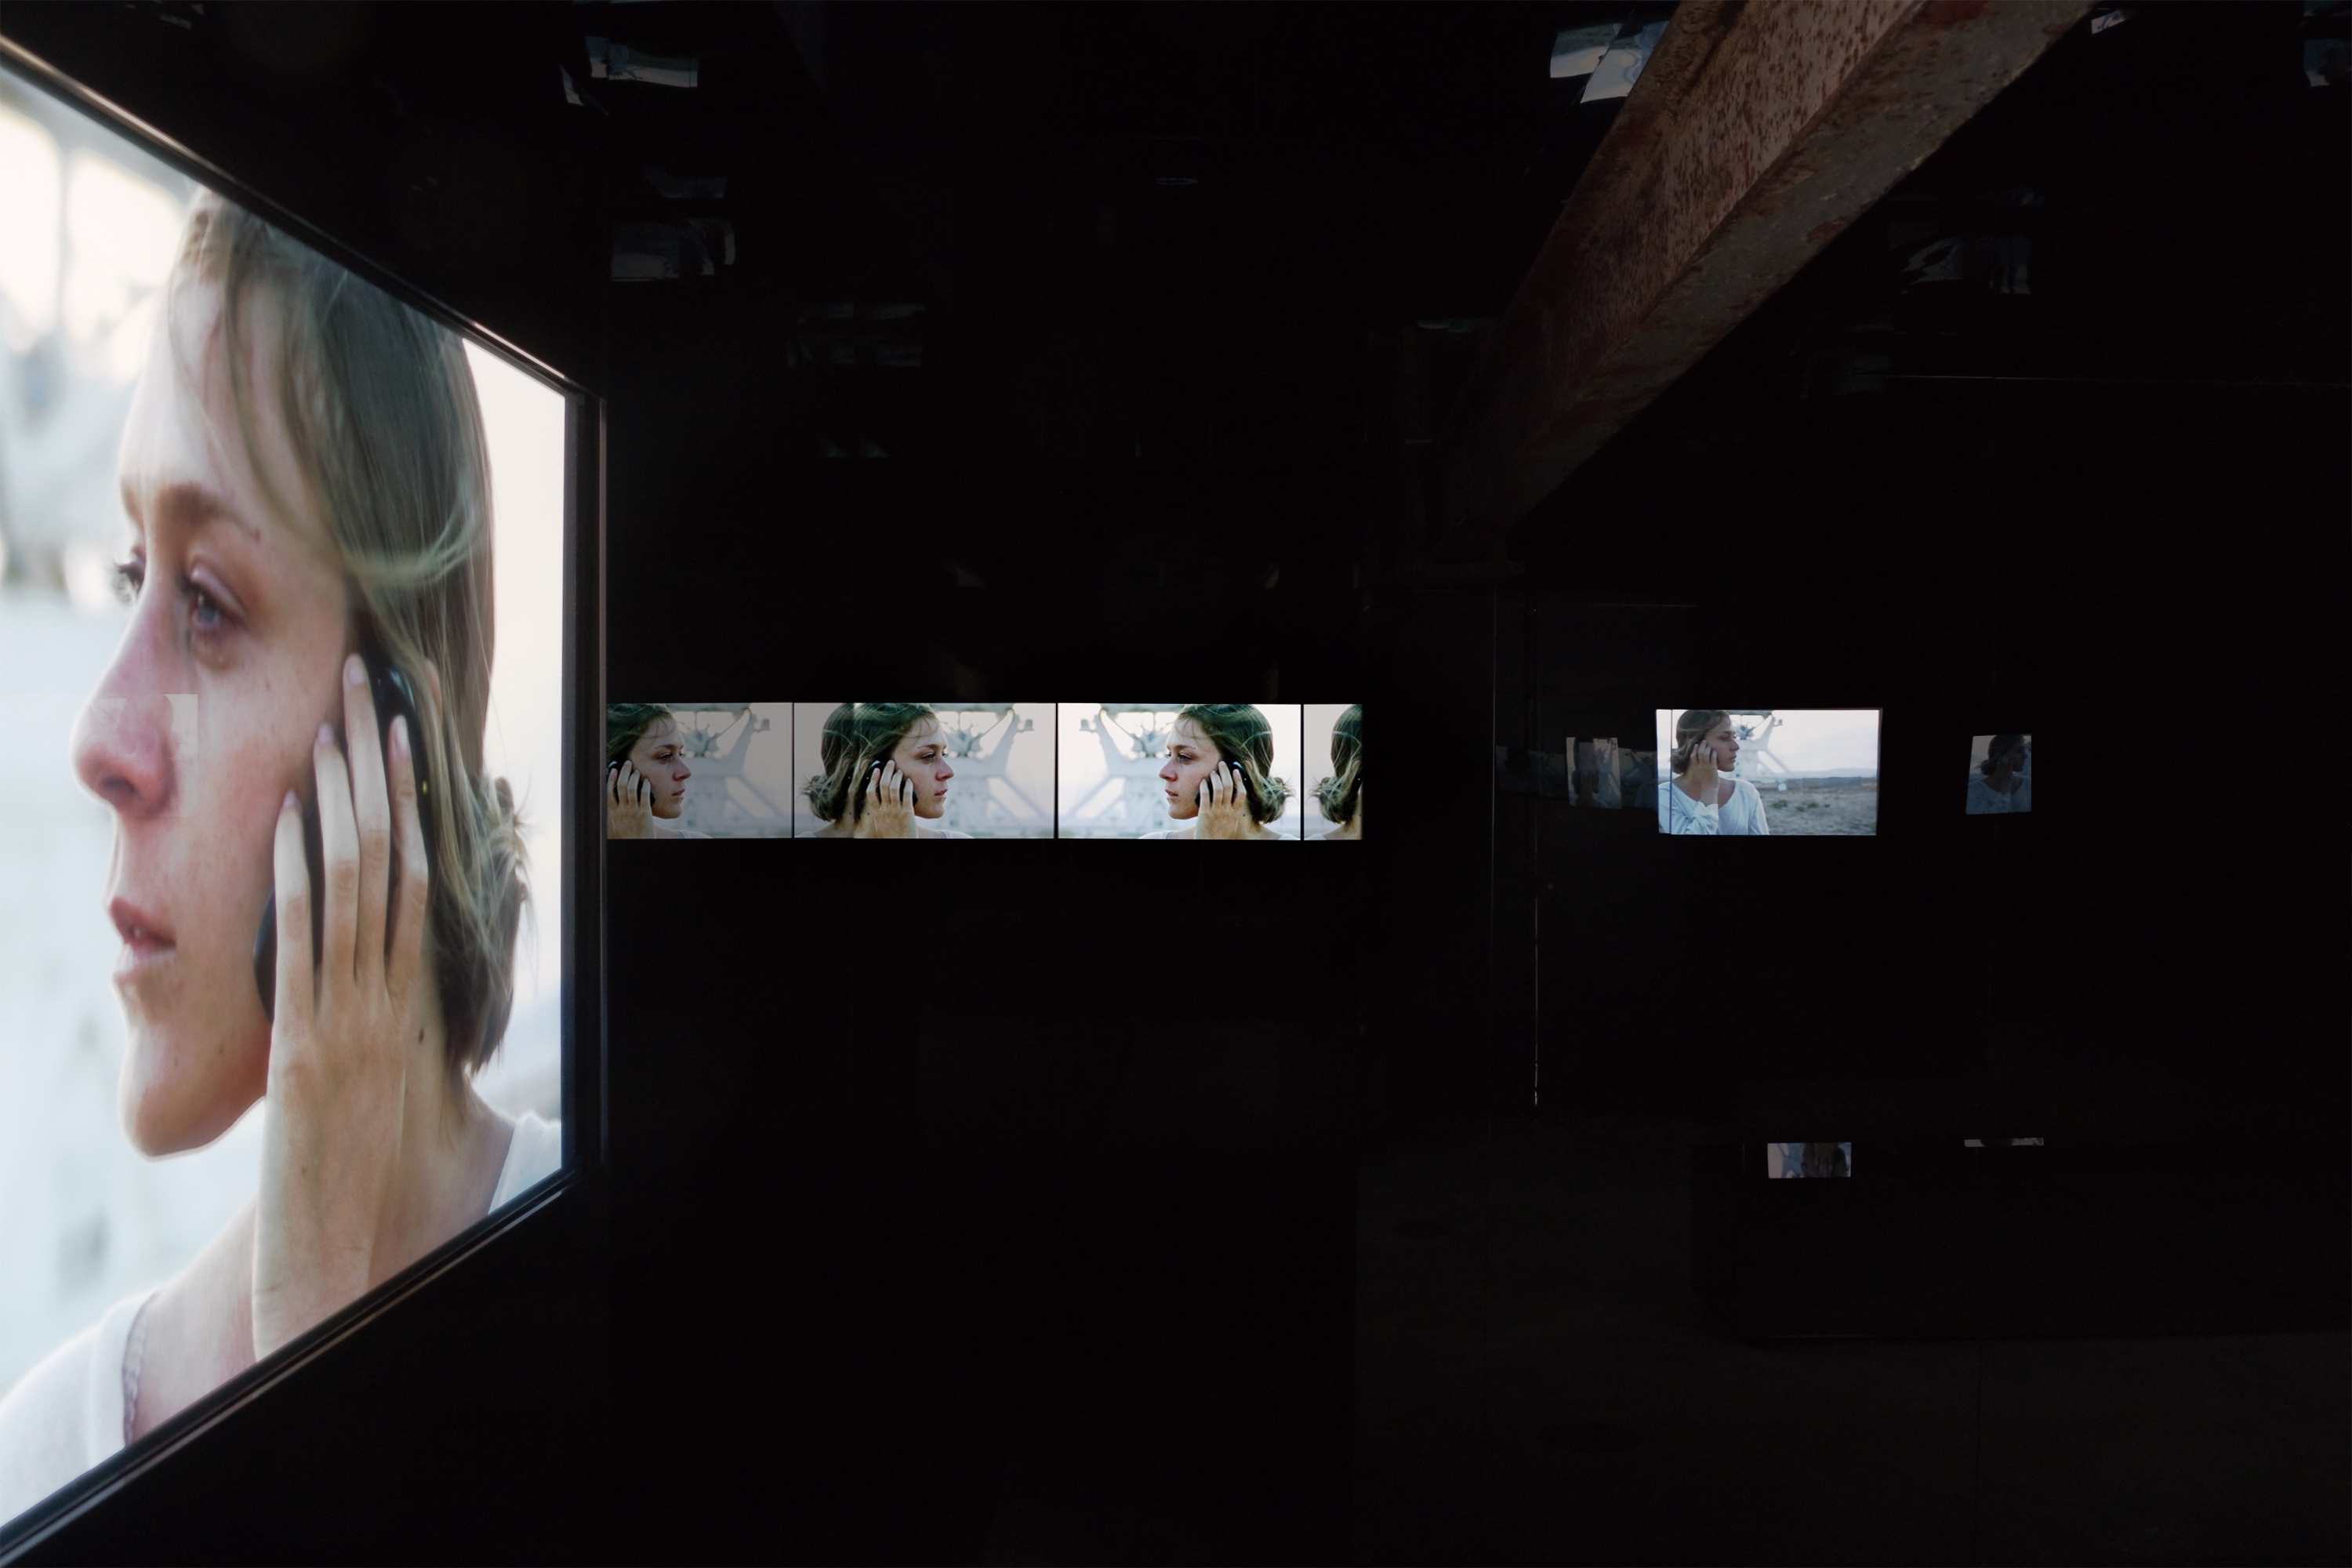 doug aitken jet set life portrayal video installation dark